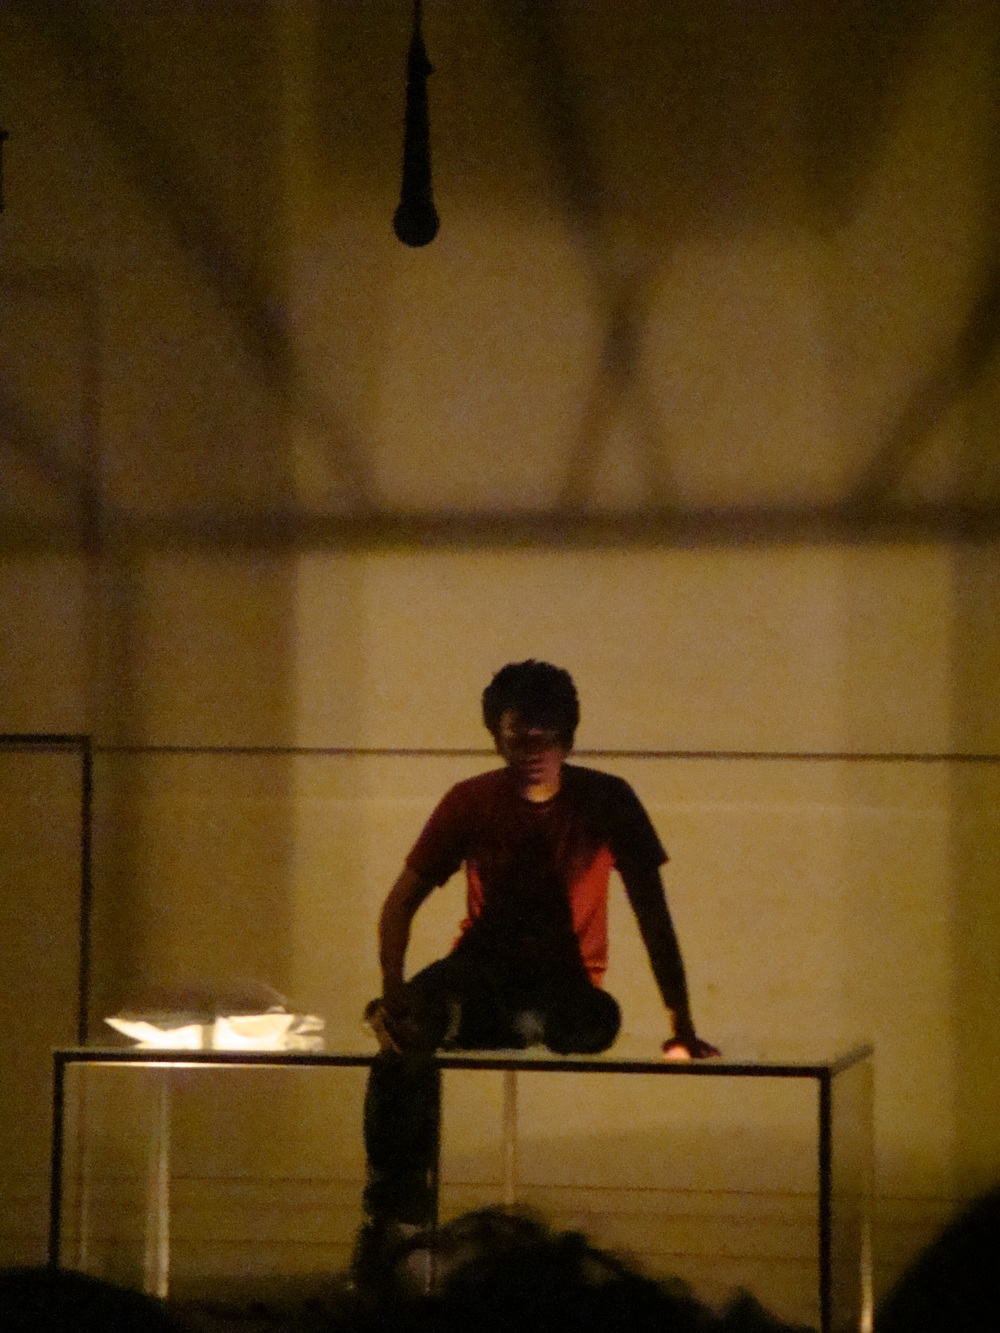 Waiting- the Journey of Asylum, ASRC 2009-2008 performance